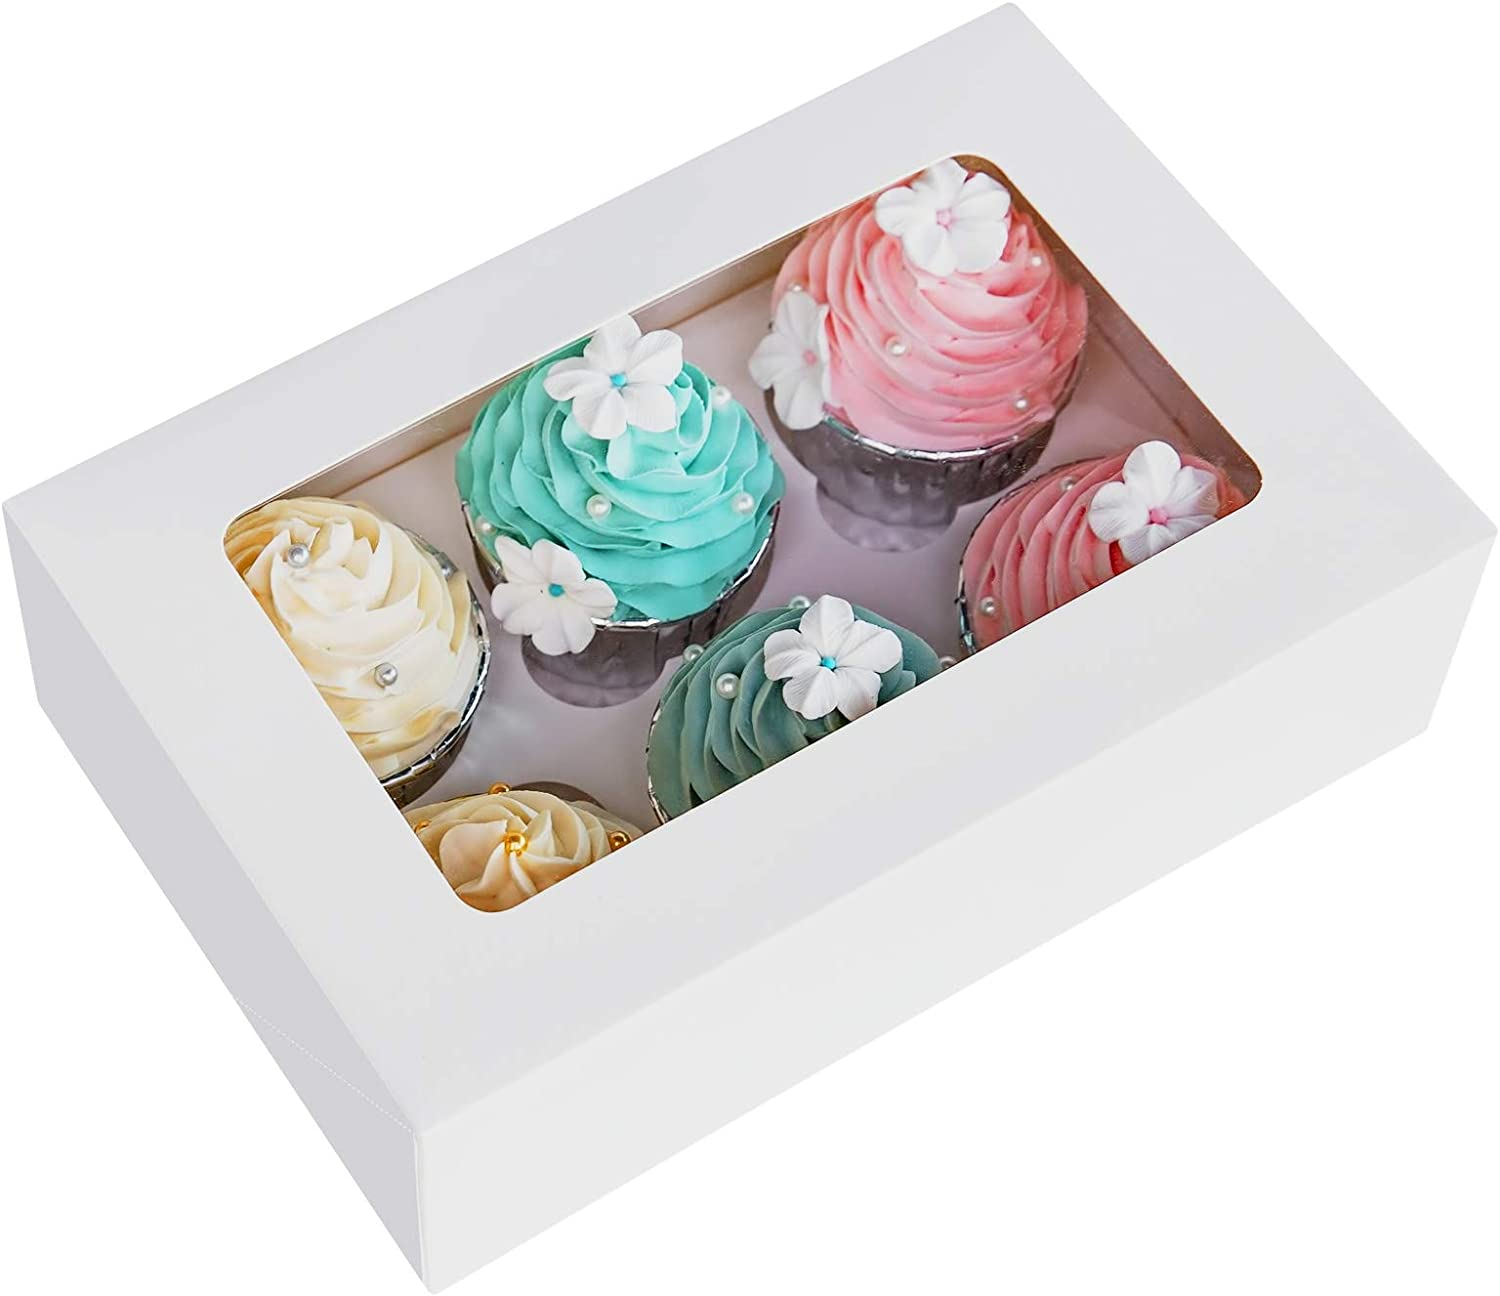 Cupcake Boxes with Inserts 6 Holders,9x6x3inch Large White Standard Bakery Boxes with Window Food Grade Cake Carrier Container for Muffins,Gift Treat Box Bulk,Pack of 15